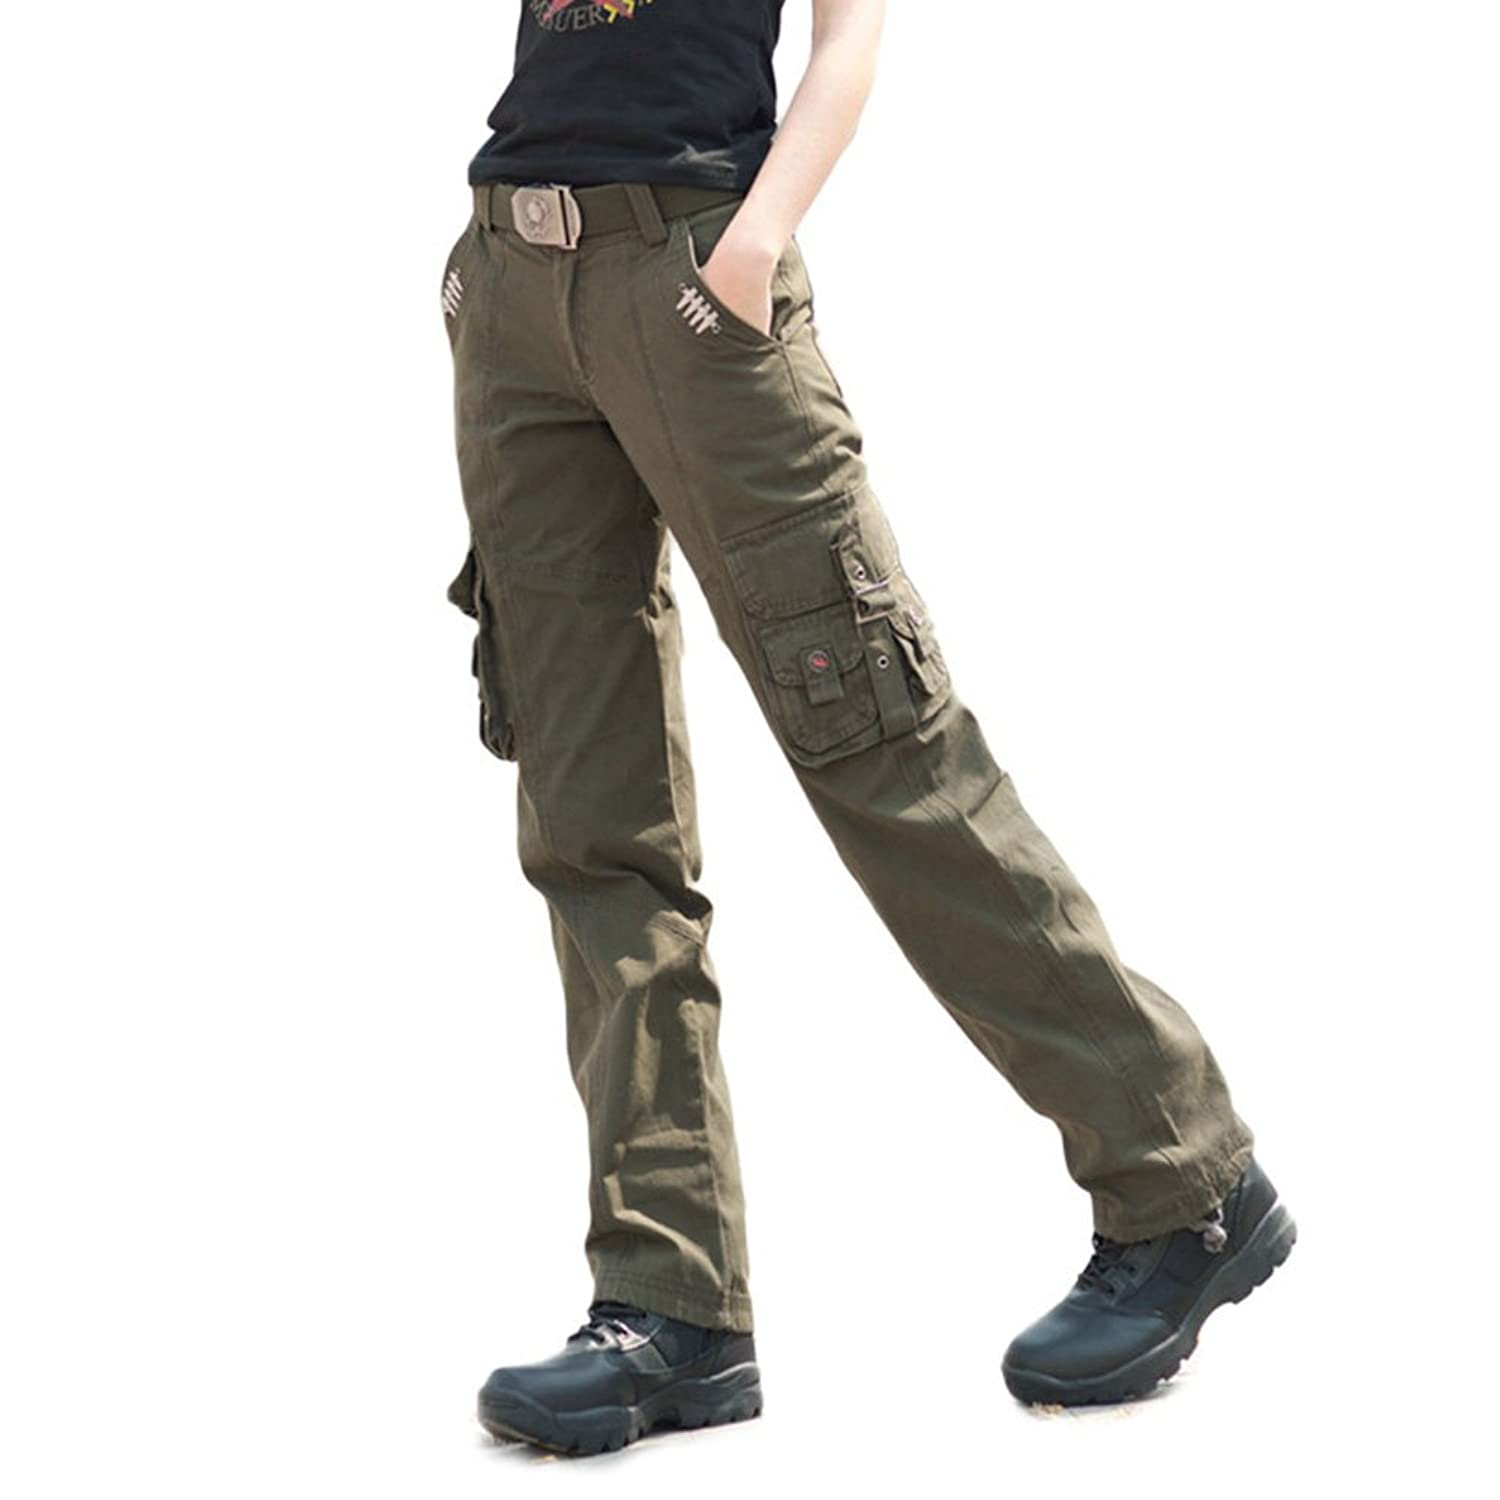 Free Knight Women's Breathable Casual Straight Leg Pants Cargo Tactical Trousers